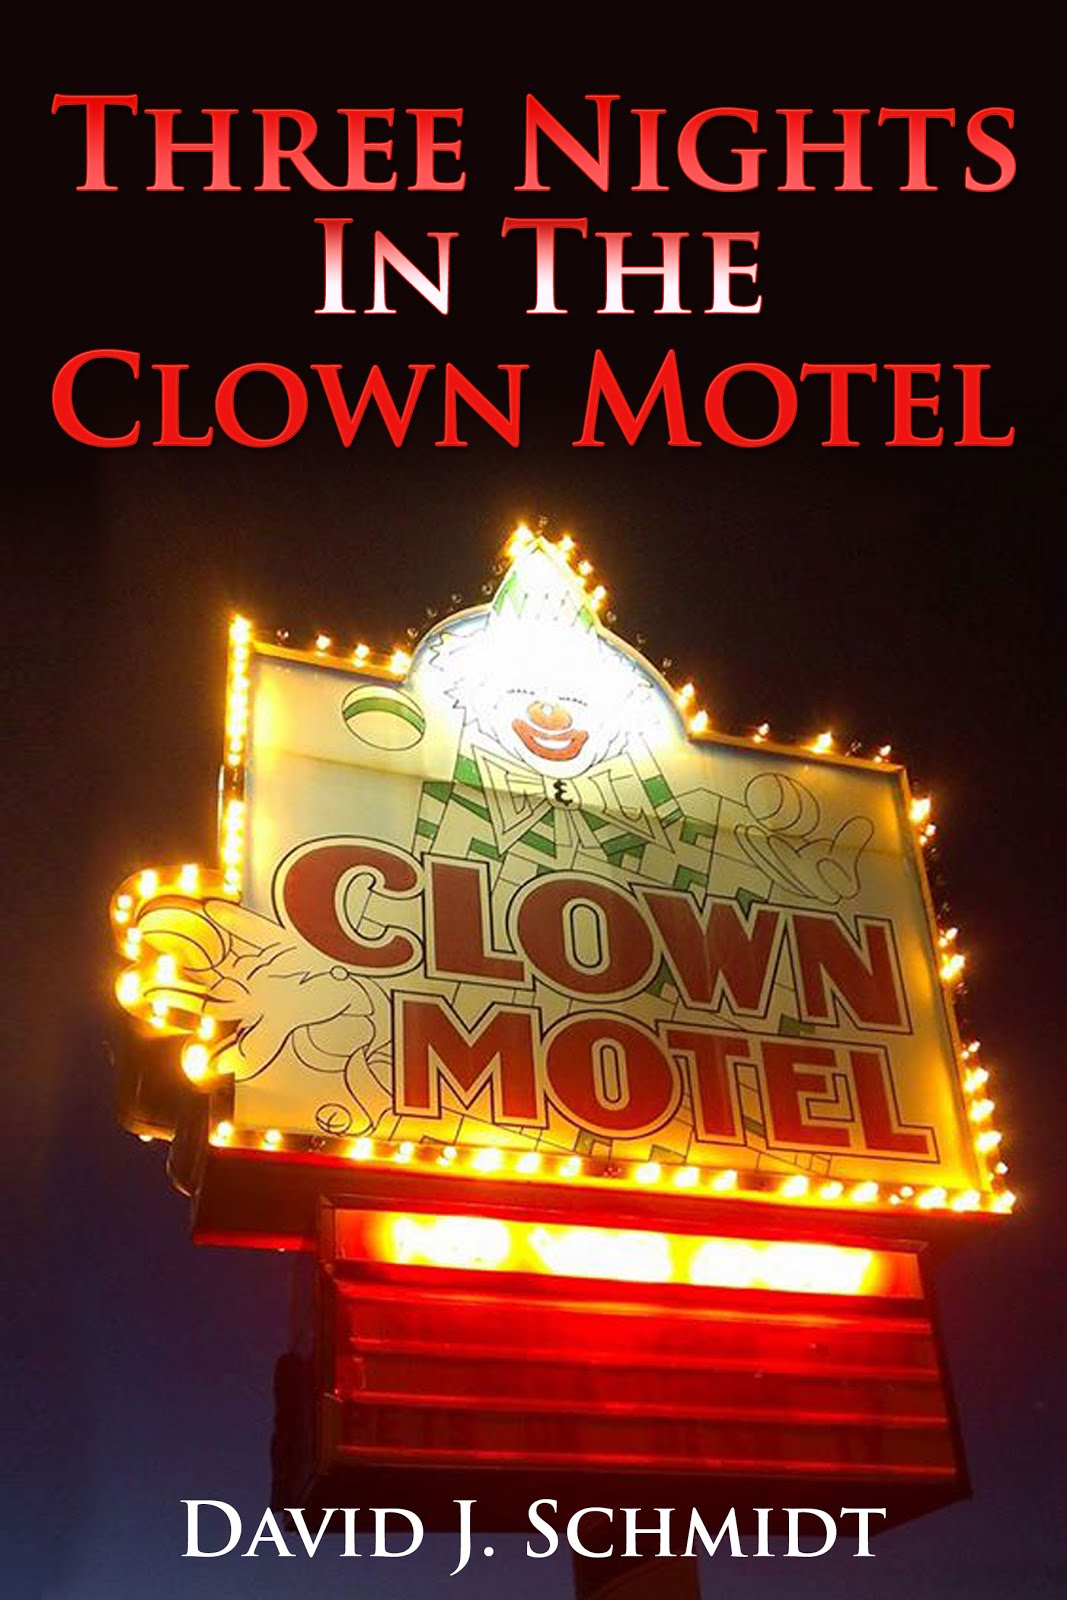 The Clown Motel book